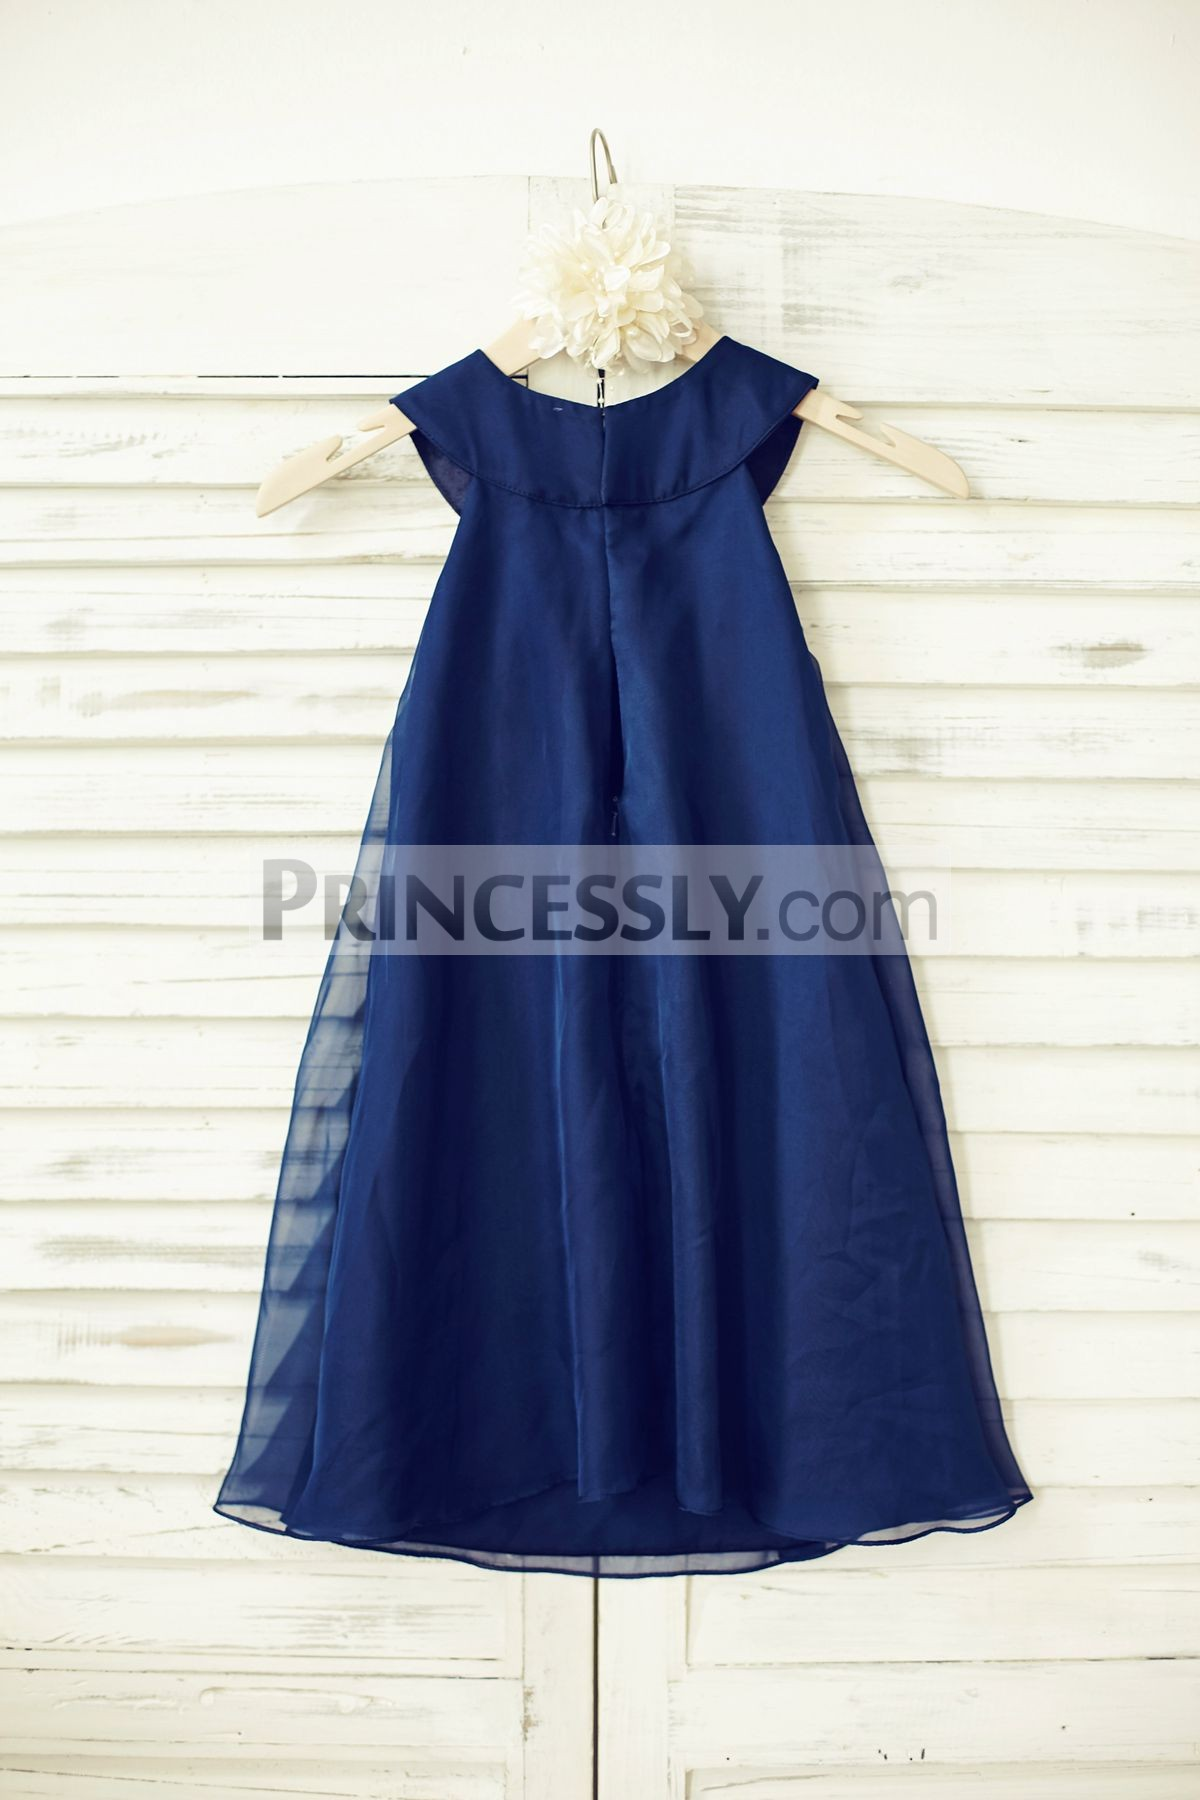 888834978b5c Boho Beach Navy Blue Chiffon Wedding Flower Girl Dress with Pearl ...